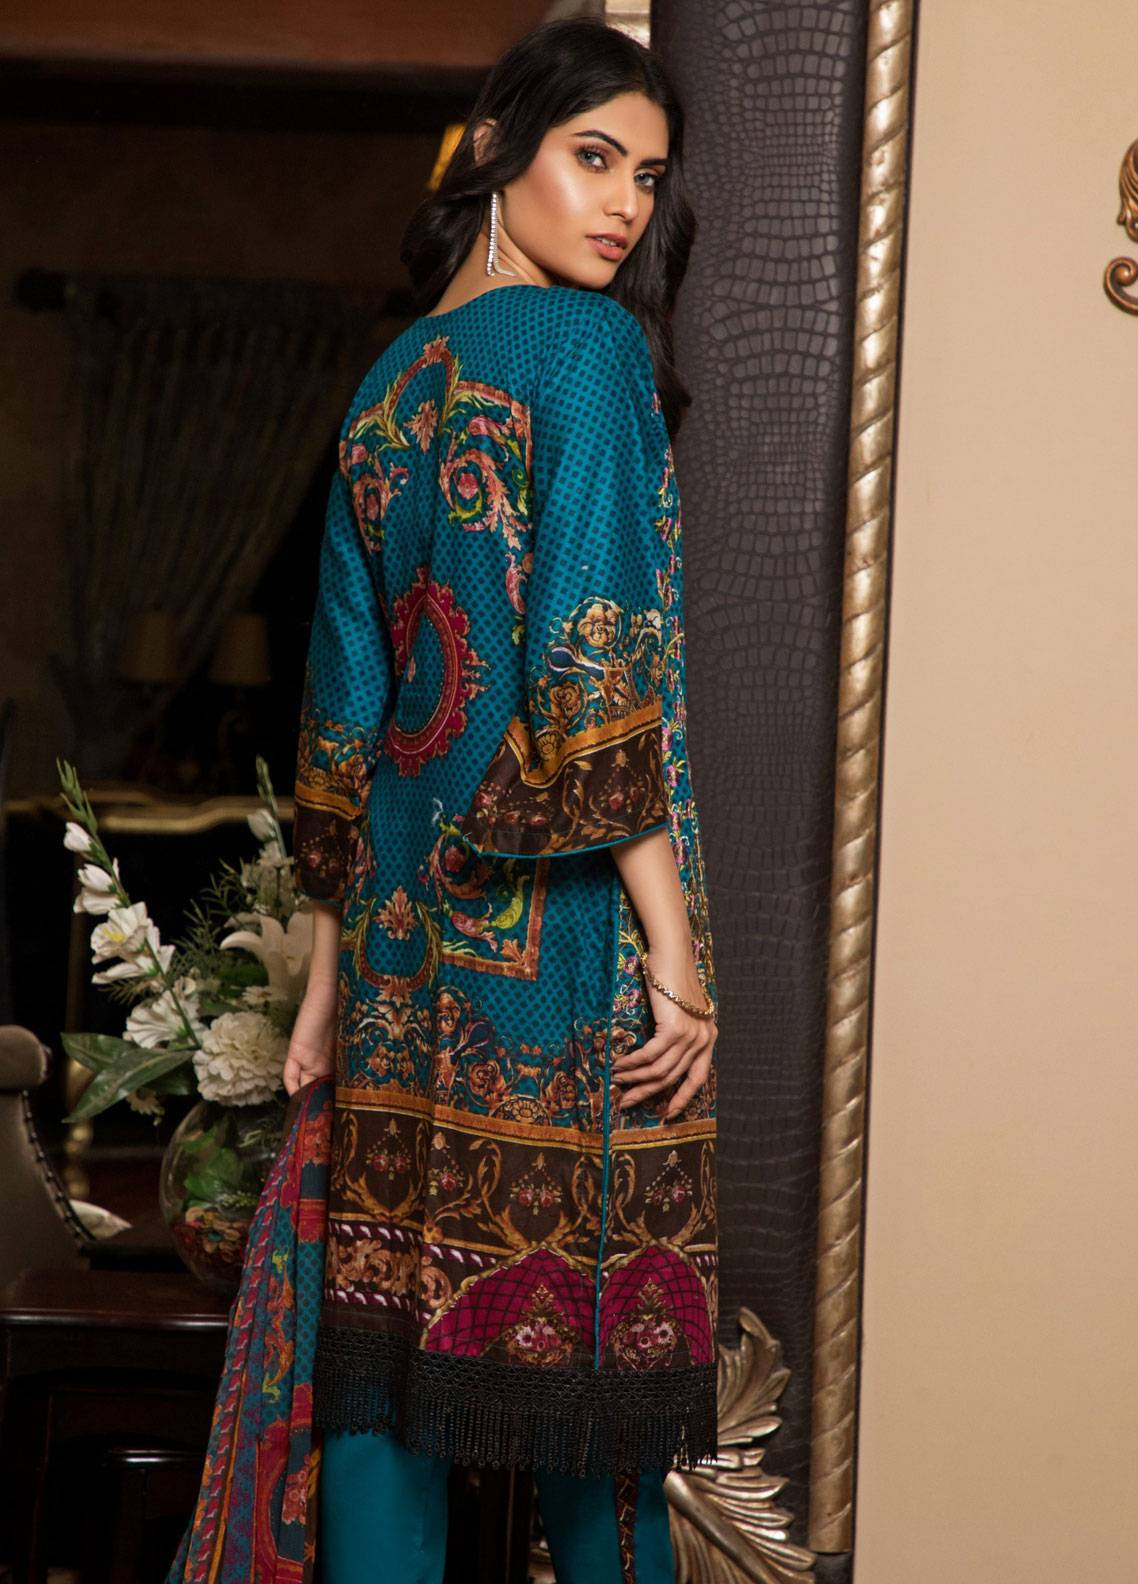 cf605bf734 Sahil by ZS Textiles: Sahil Lawn 2019 Unstitched Embroidered and ...